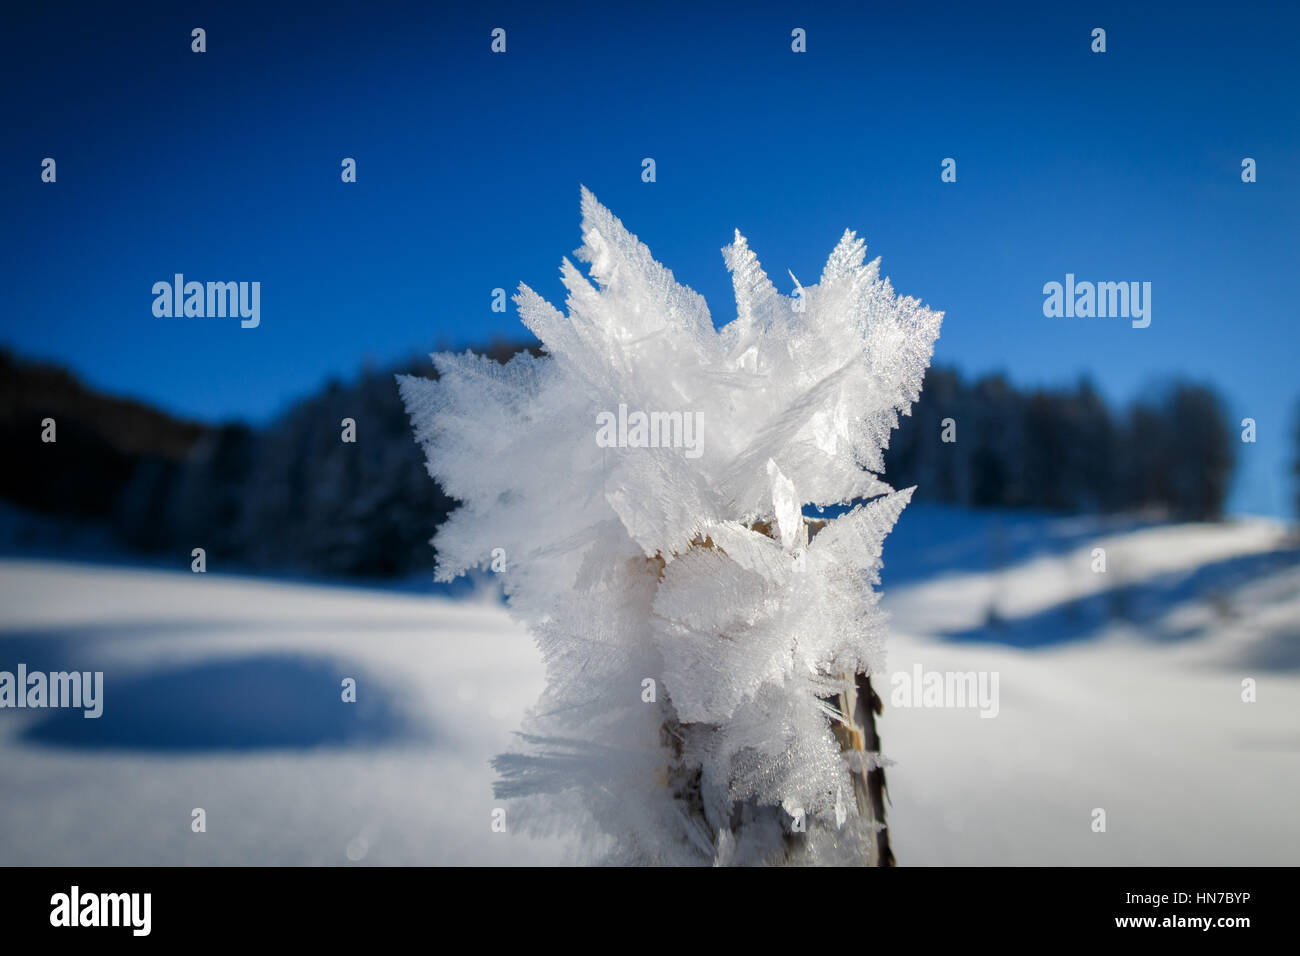 Ice Crystals Makro - Stock Image